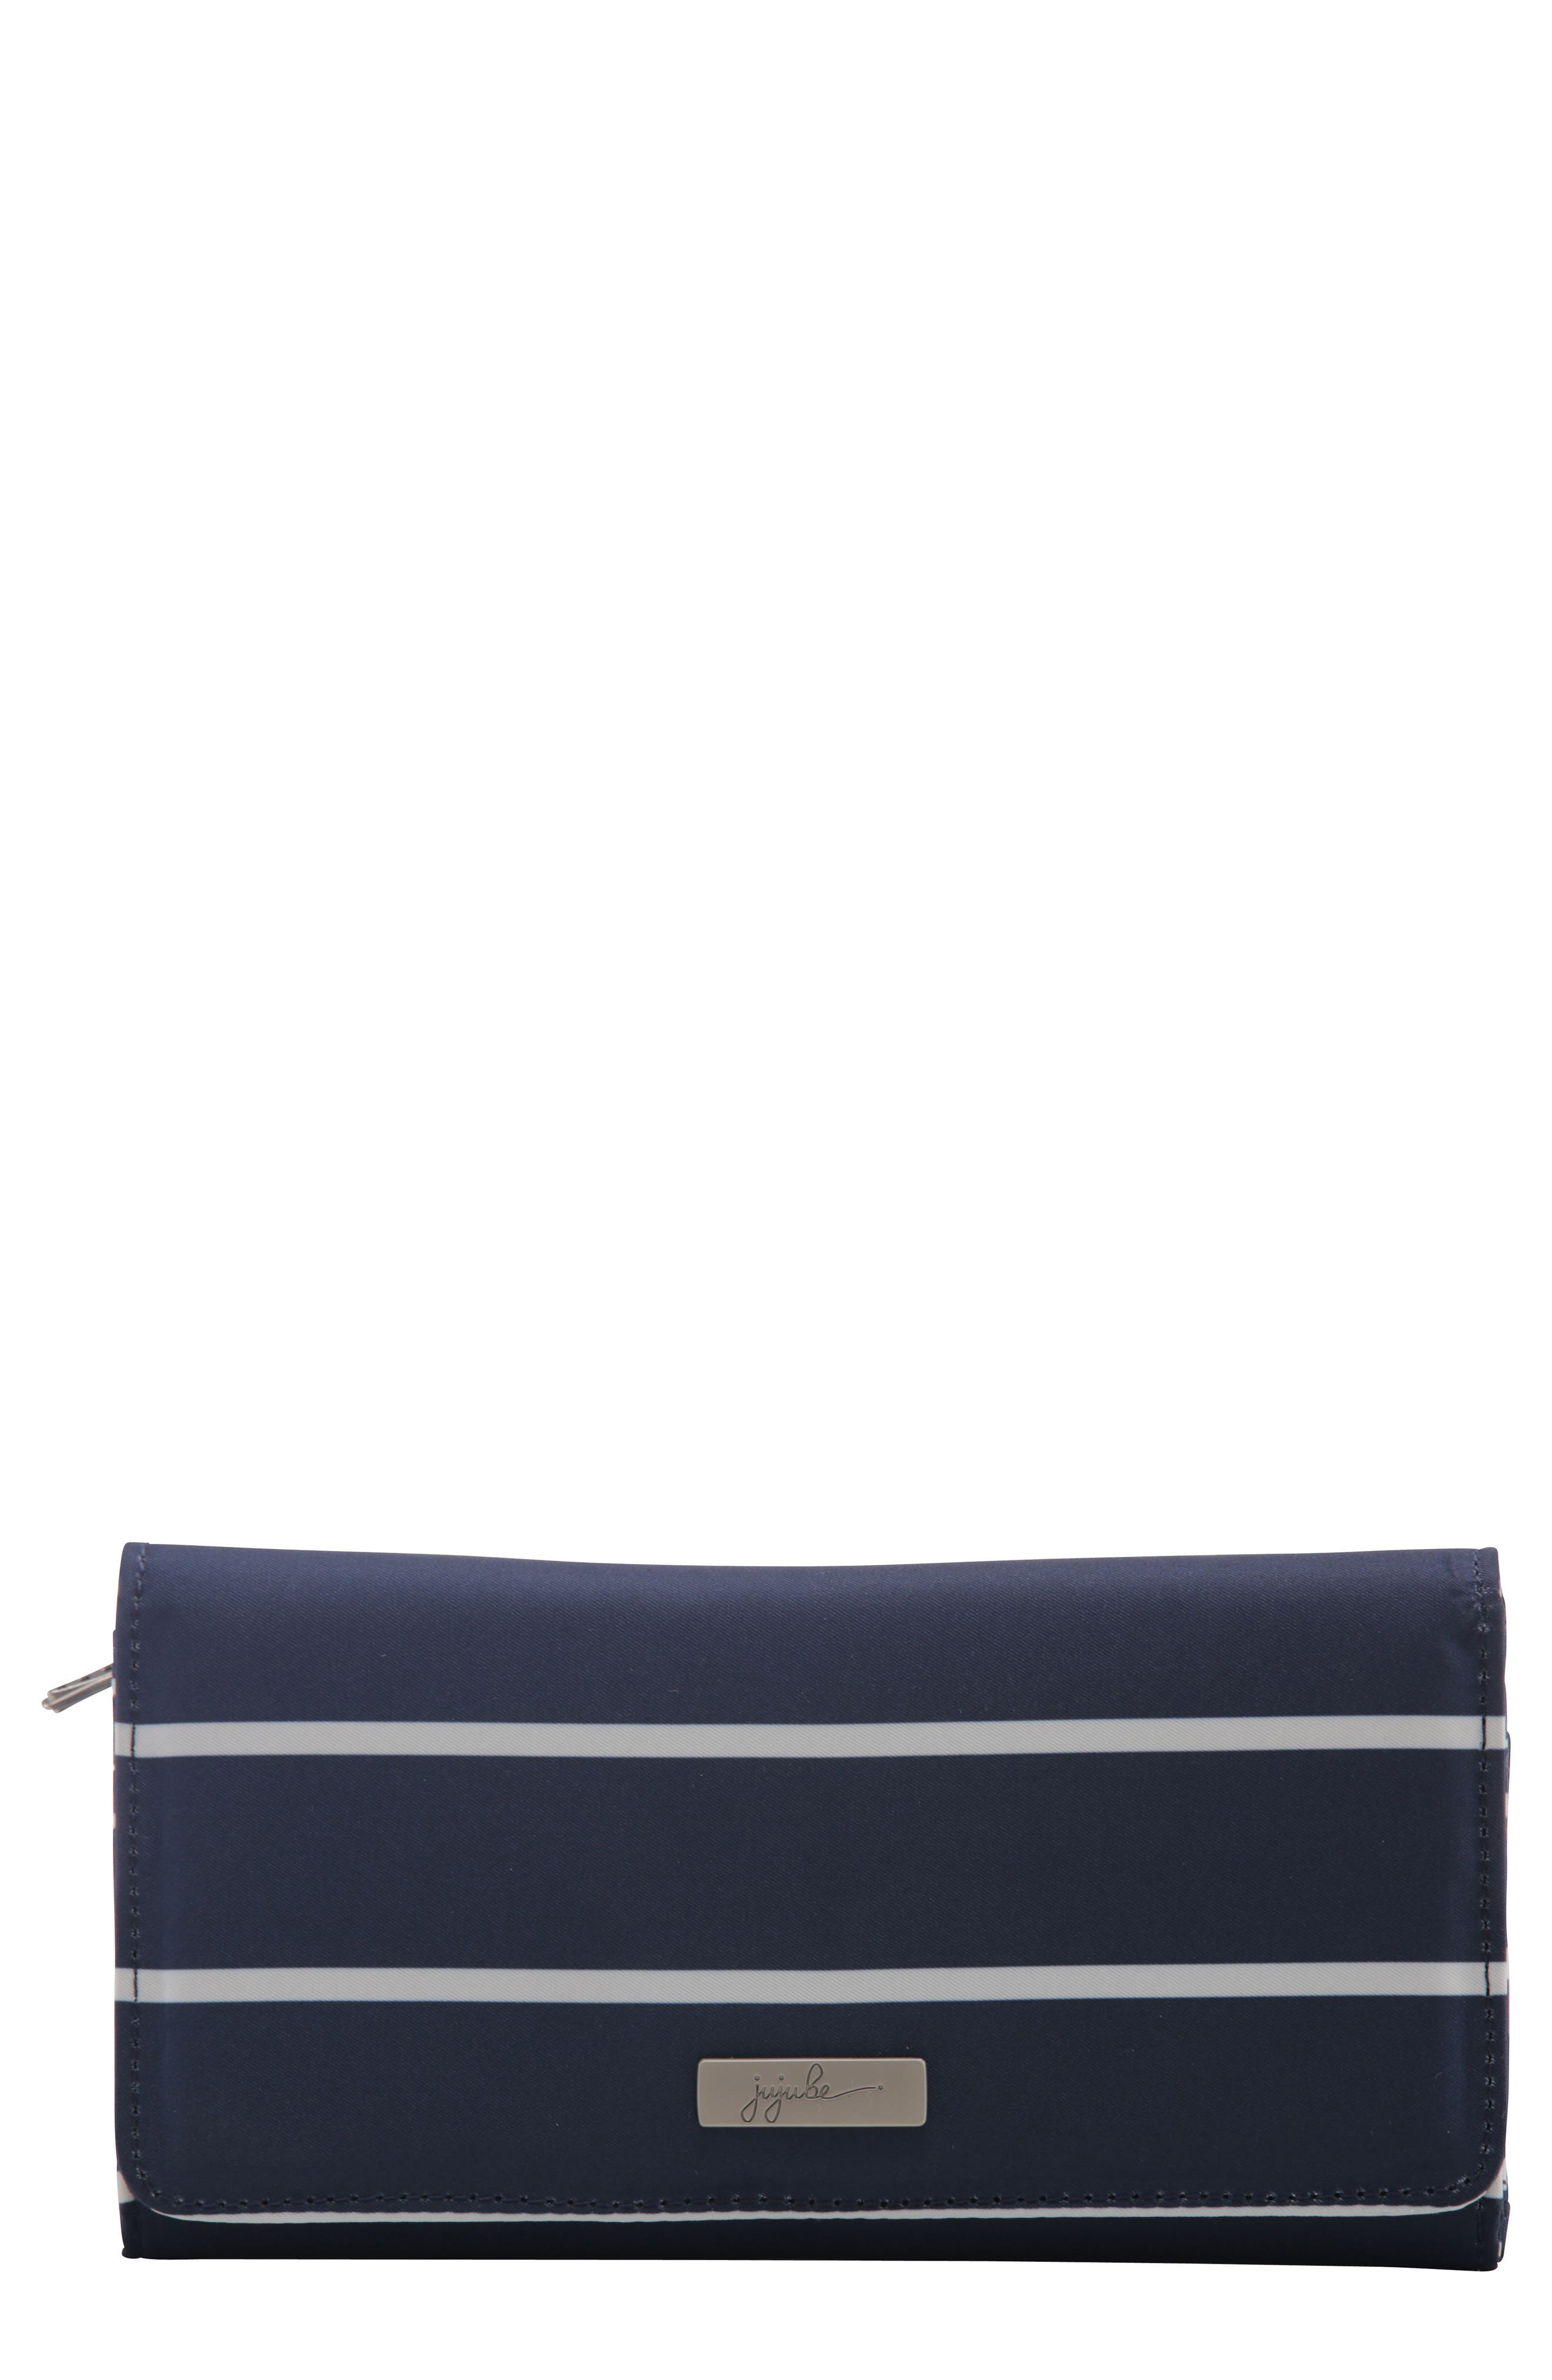 Be Rich - Coastal Collection Trifold Clutch Wallet,                             Main thumbnail 1, color,                             Nantucket